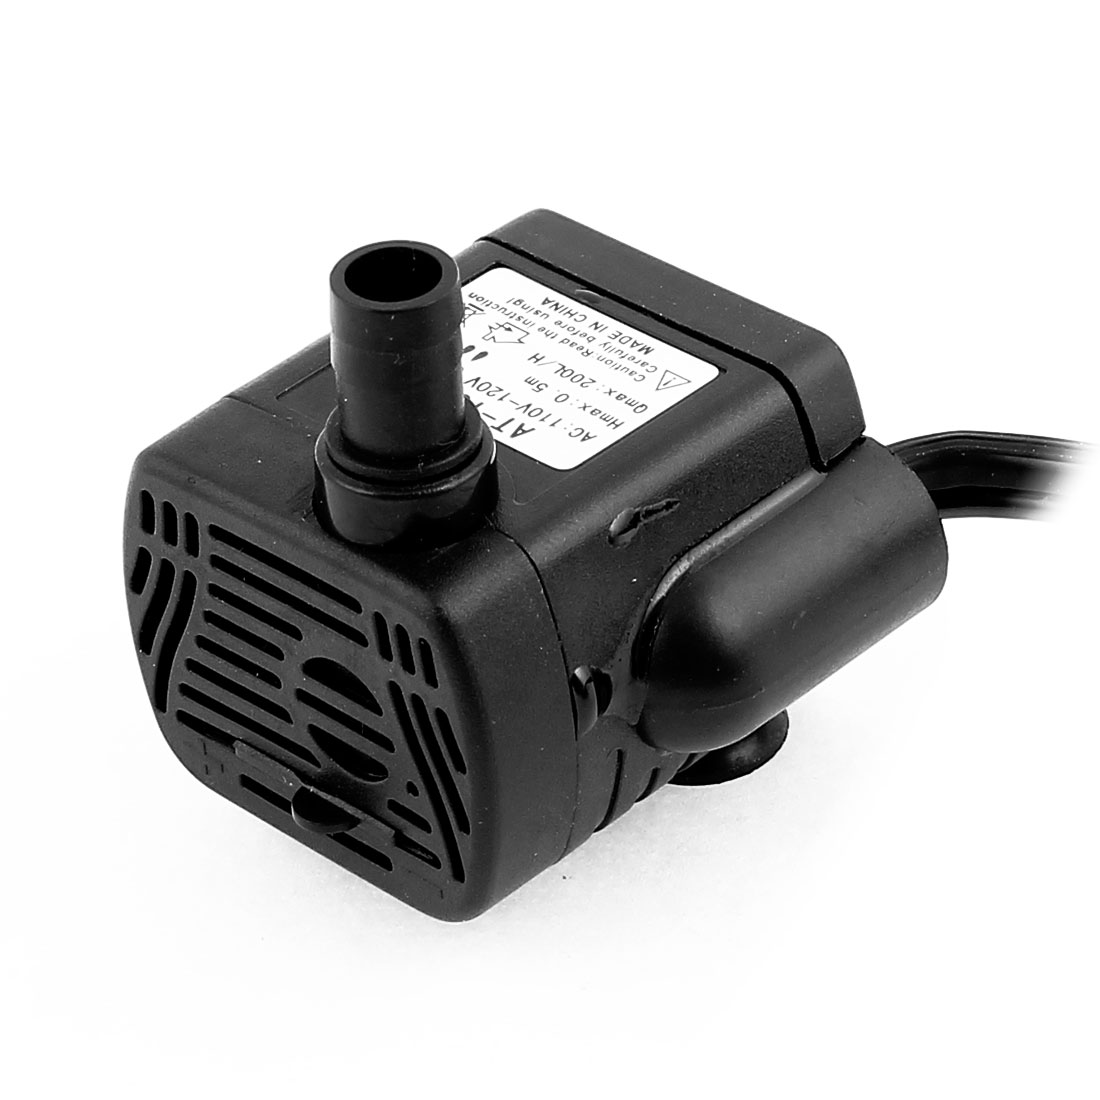 AC 110V-120V US Plug 3W Electric Mini Submersible Water Pump Aquarium Fountain